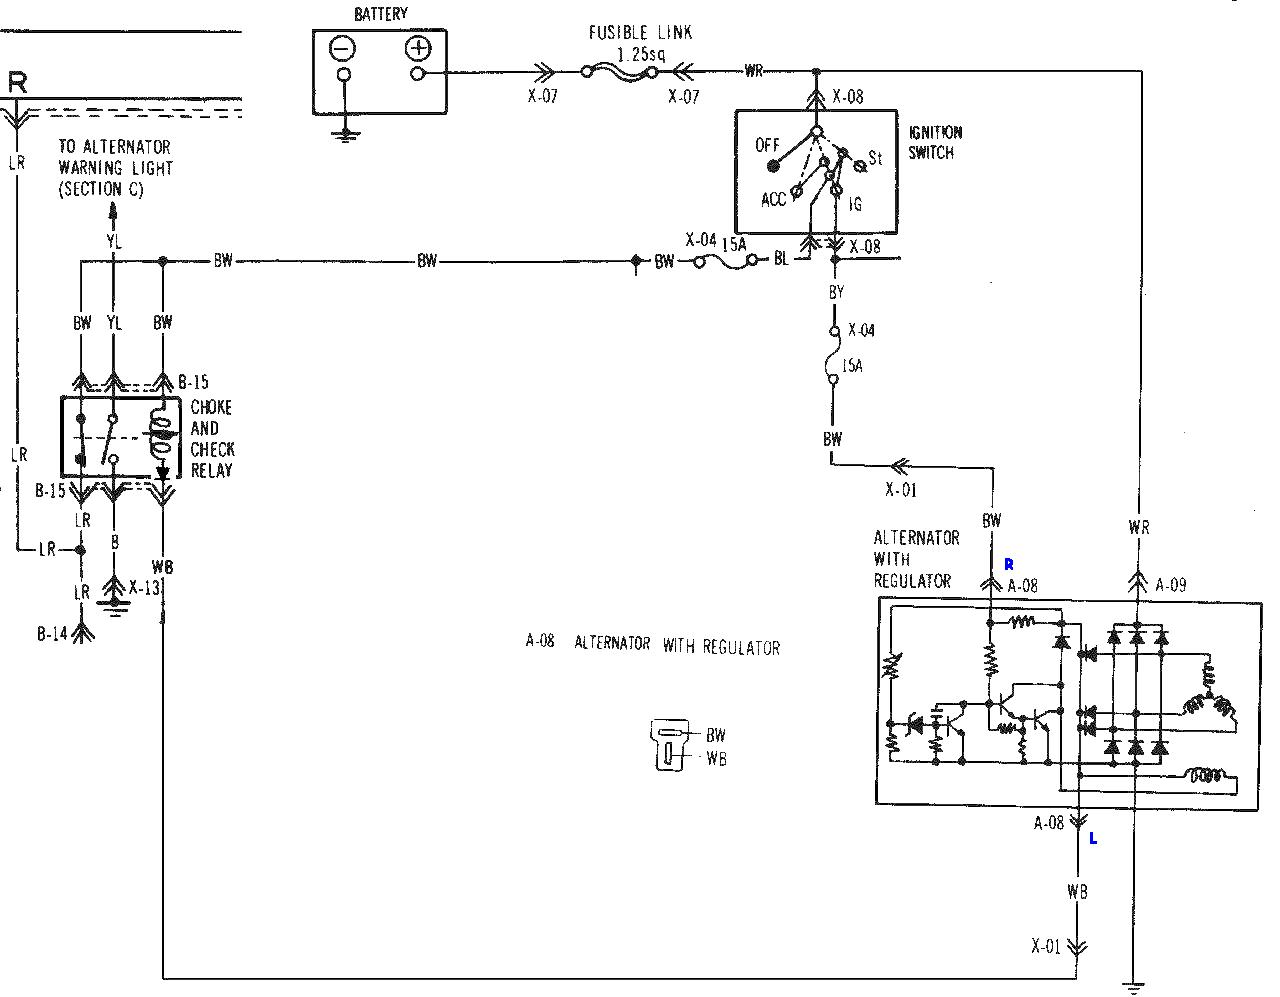 1st Gen Rx7 Wiring Diagram Wiring Diagram Data Today